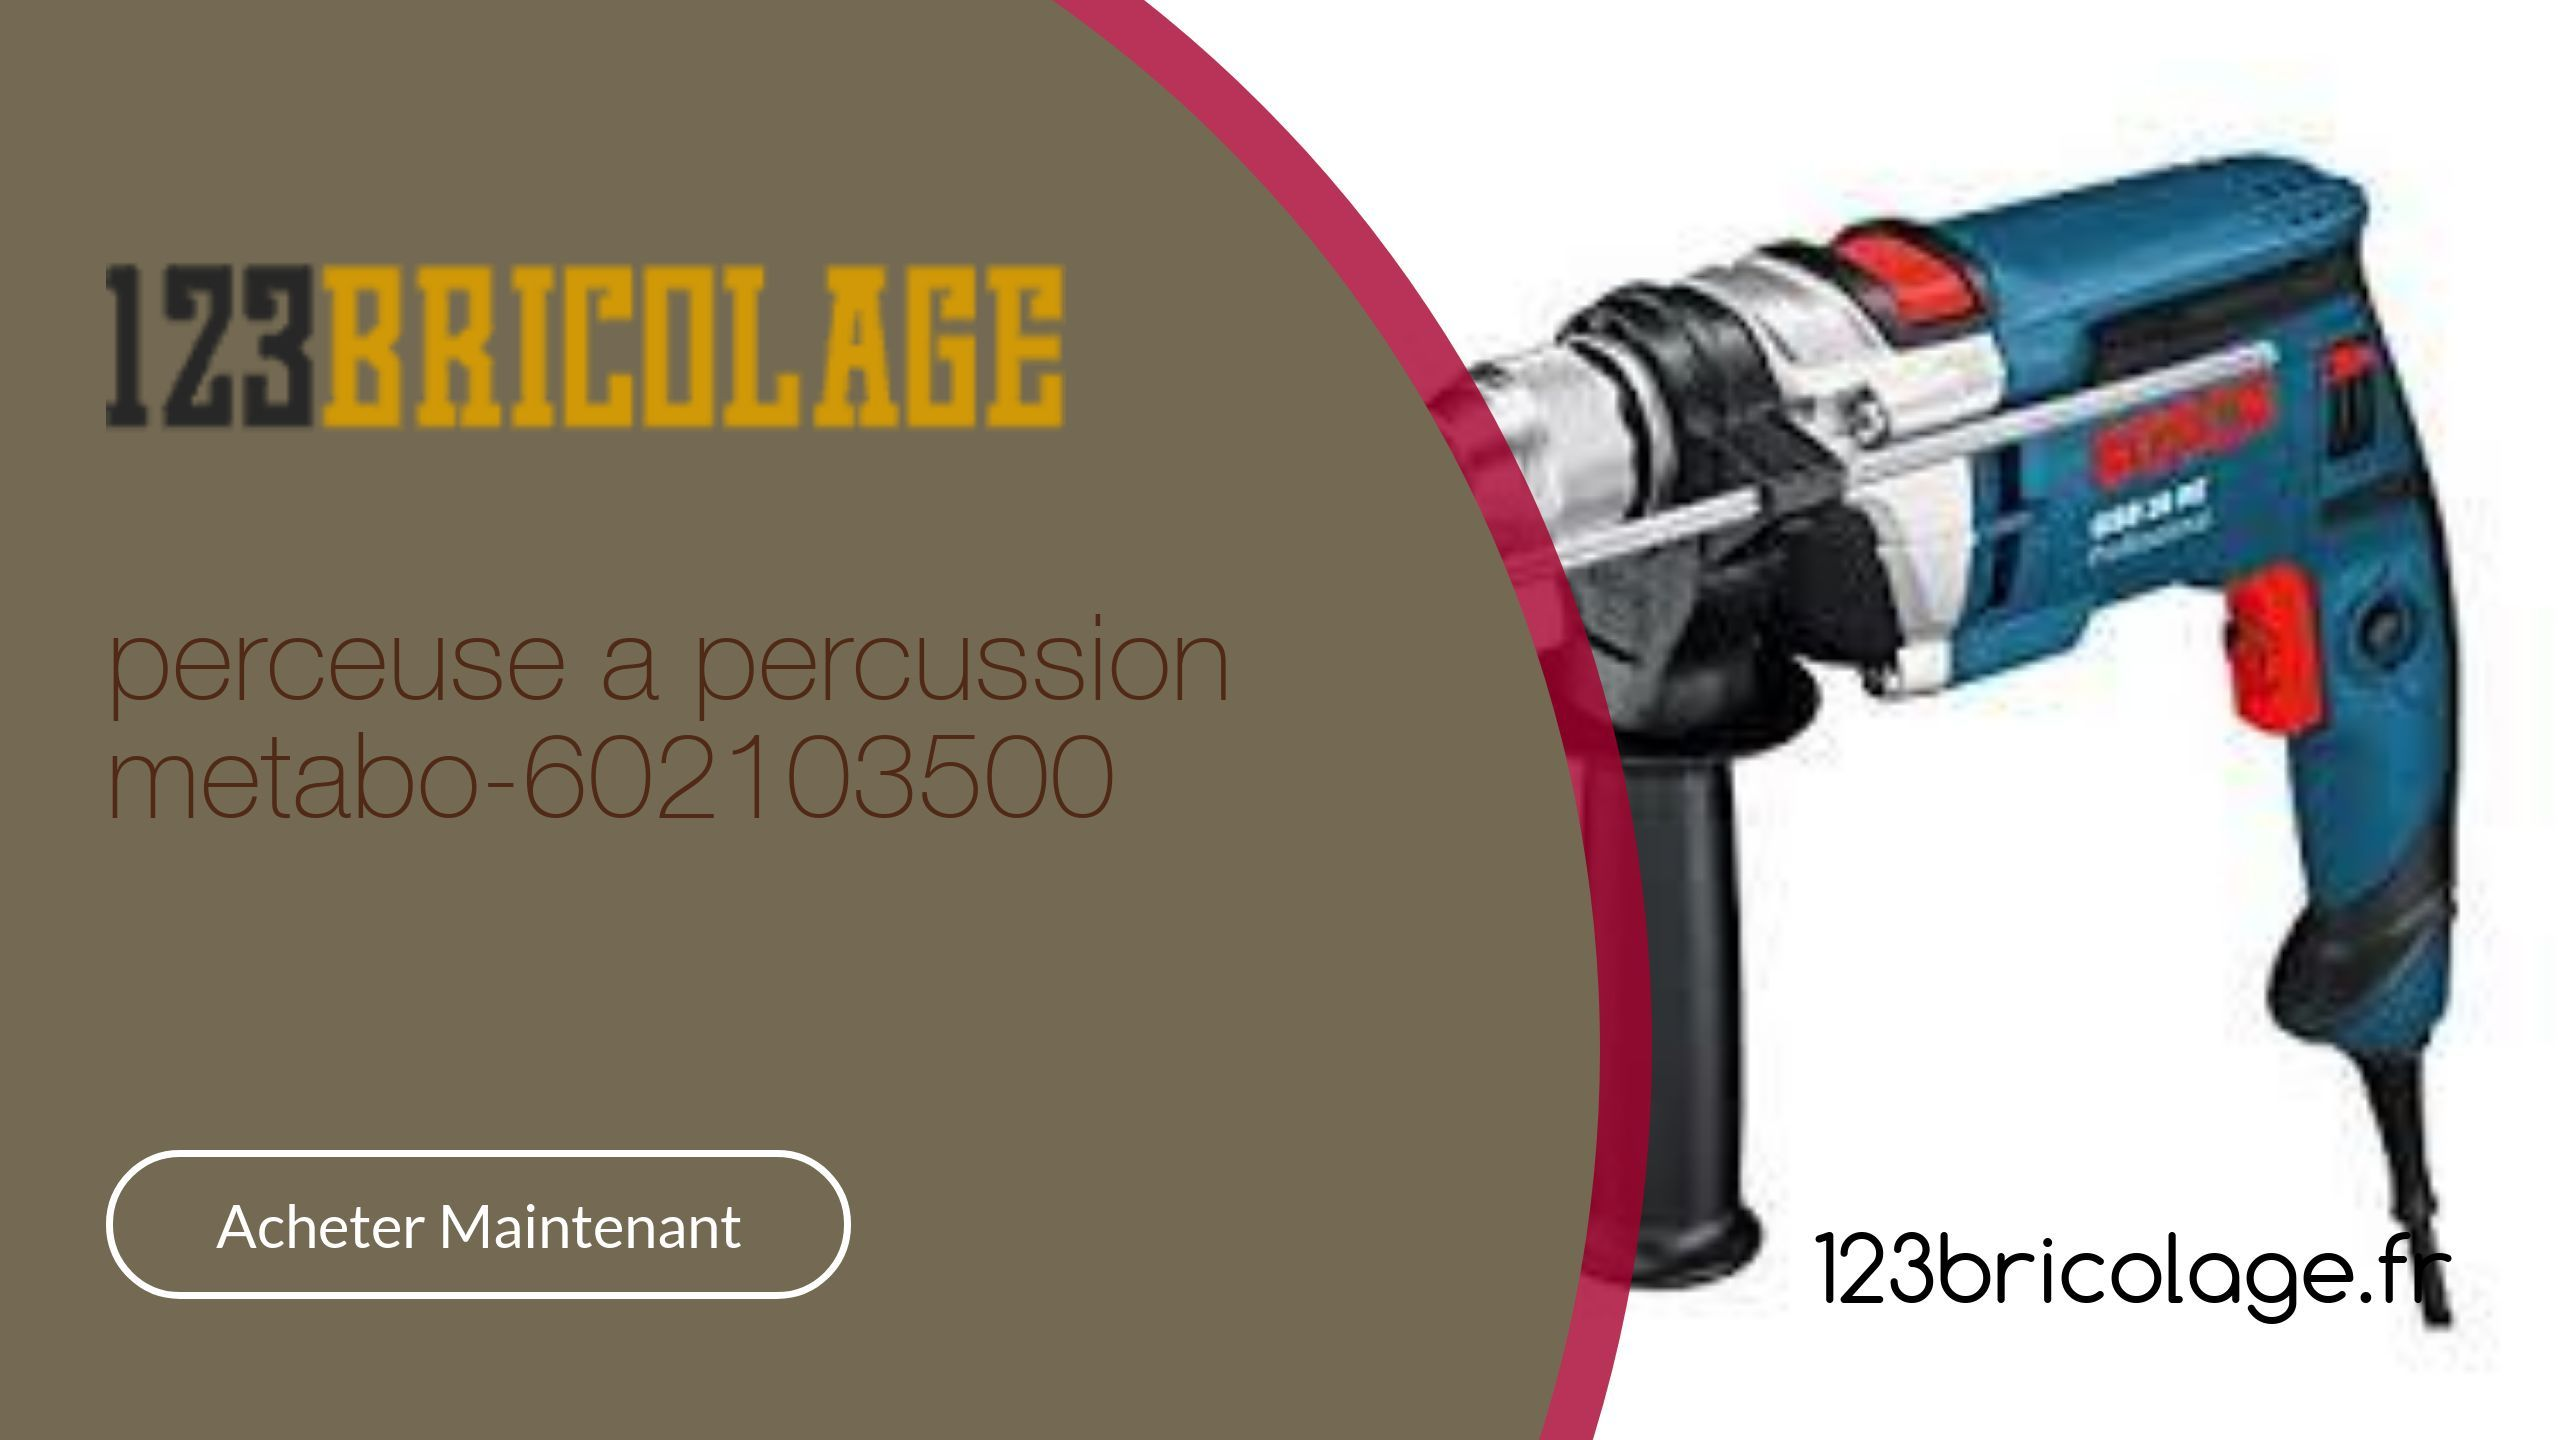 Perceuse A Percussion Metabo 602103500 Perceuse Perceuse A Percussion Percussions